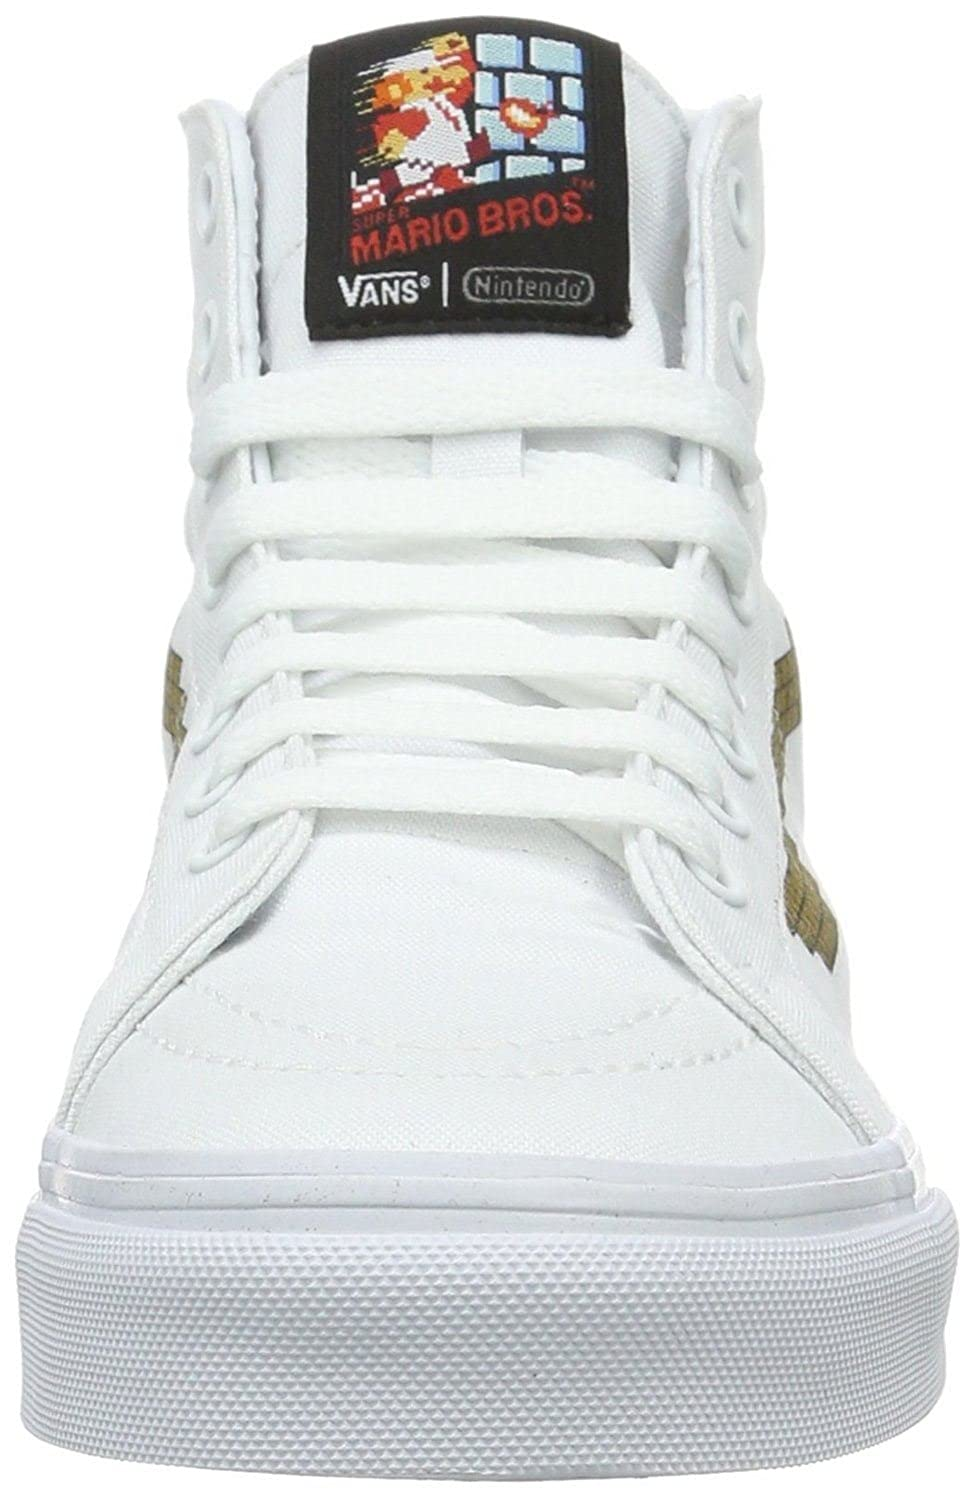 d839af3586 Vans SK8 Hi Slim Nintendo Console Canvas Trainers Shoes-6  Amazon.co.uk   Shoes   Bags